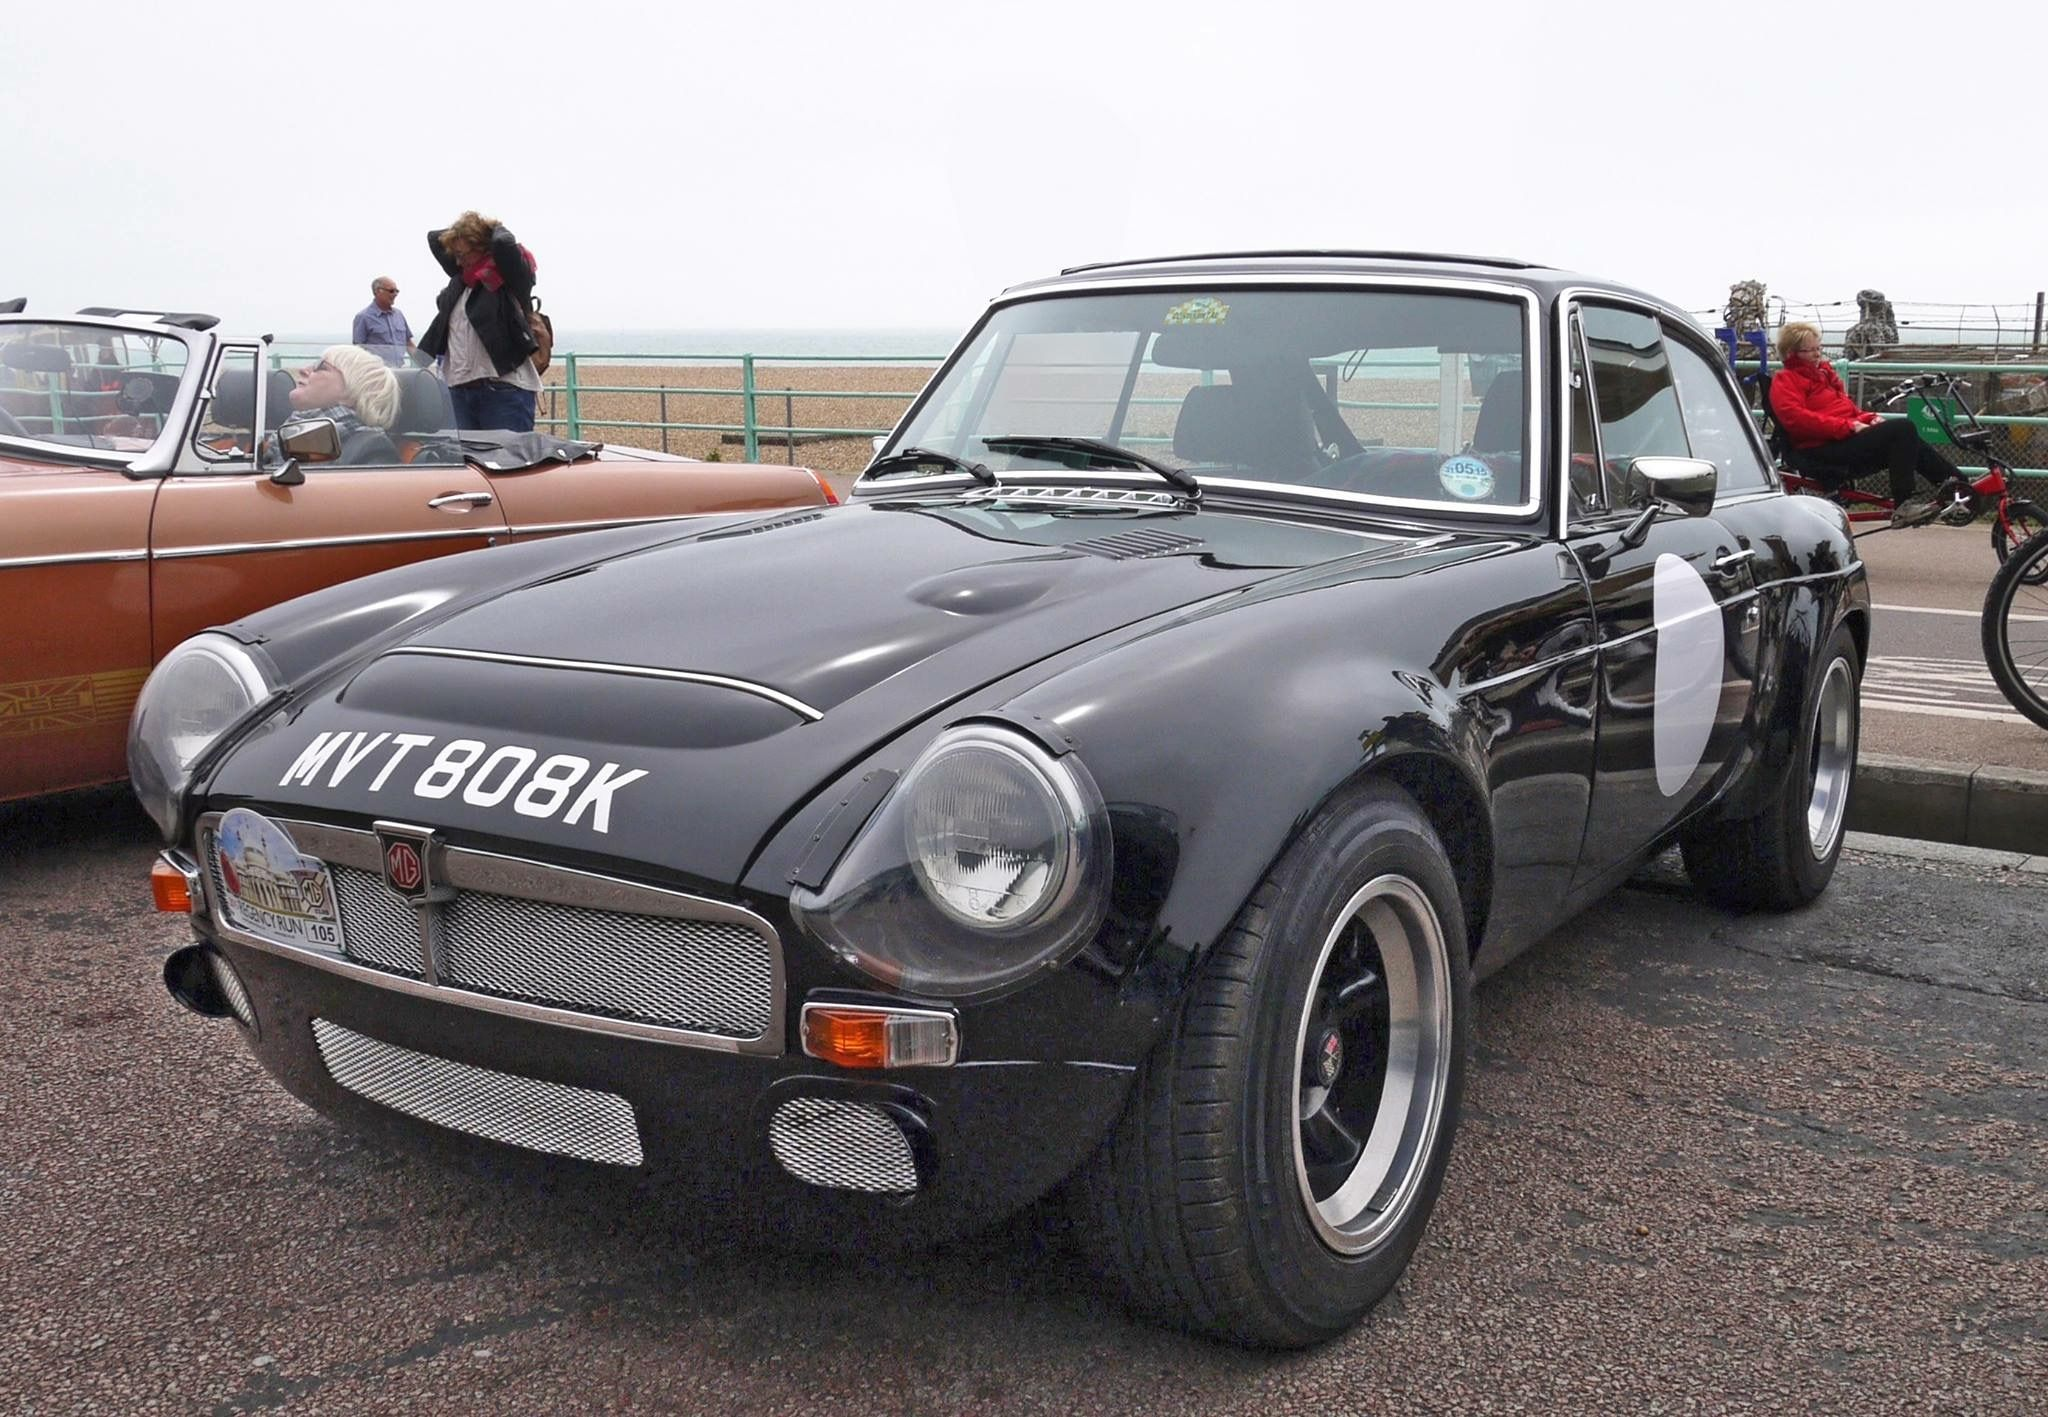 MGB with a Sebring body kit and V8 engine. | Race Cars | Pinterest ...